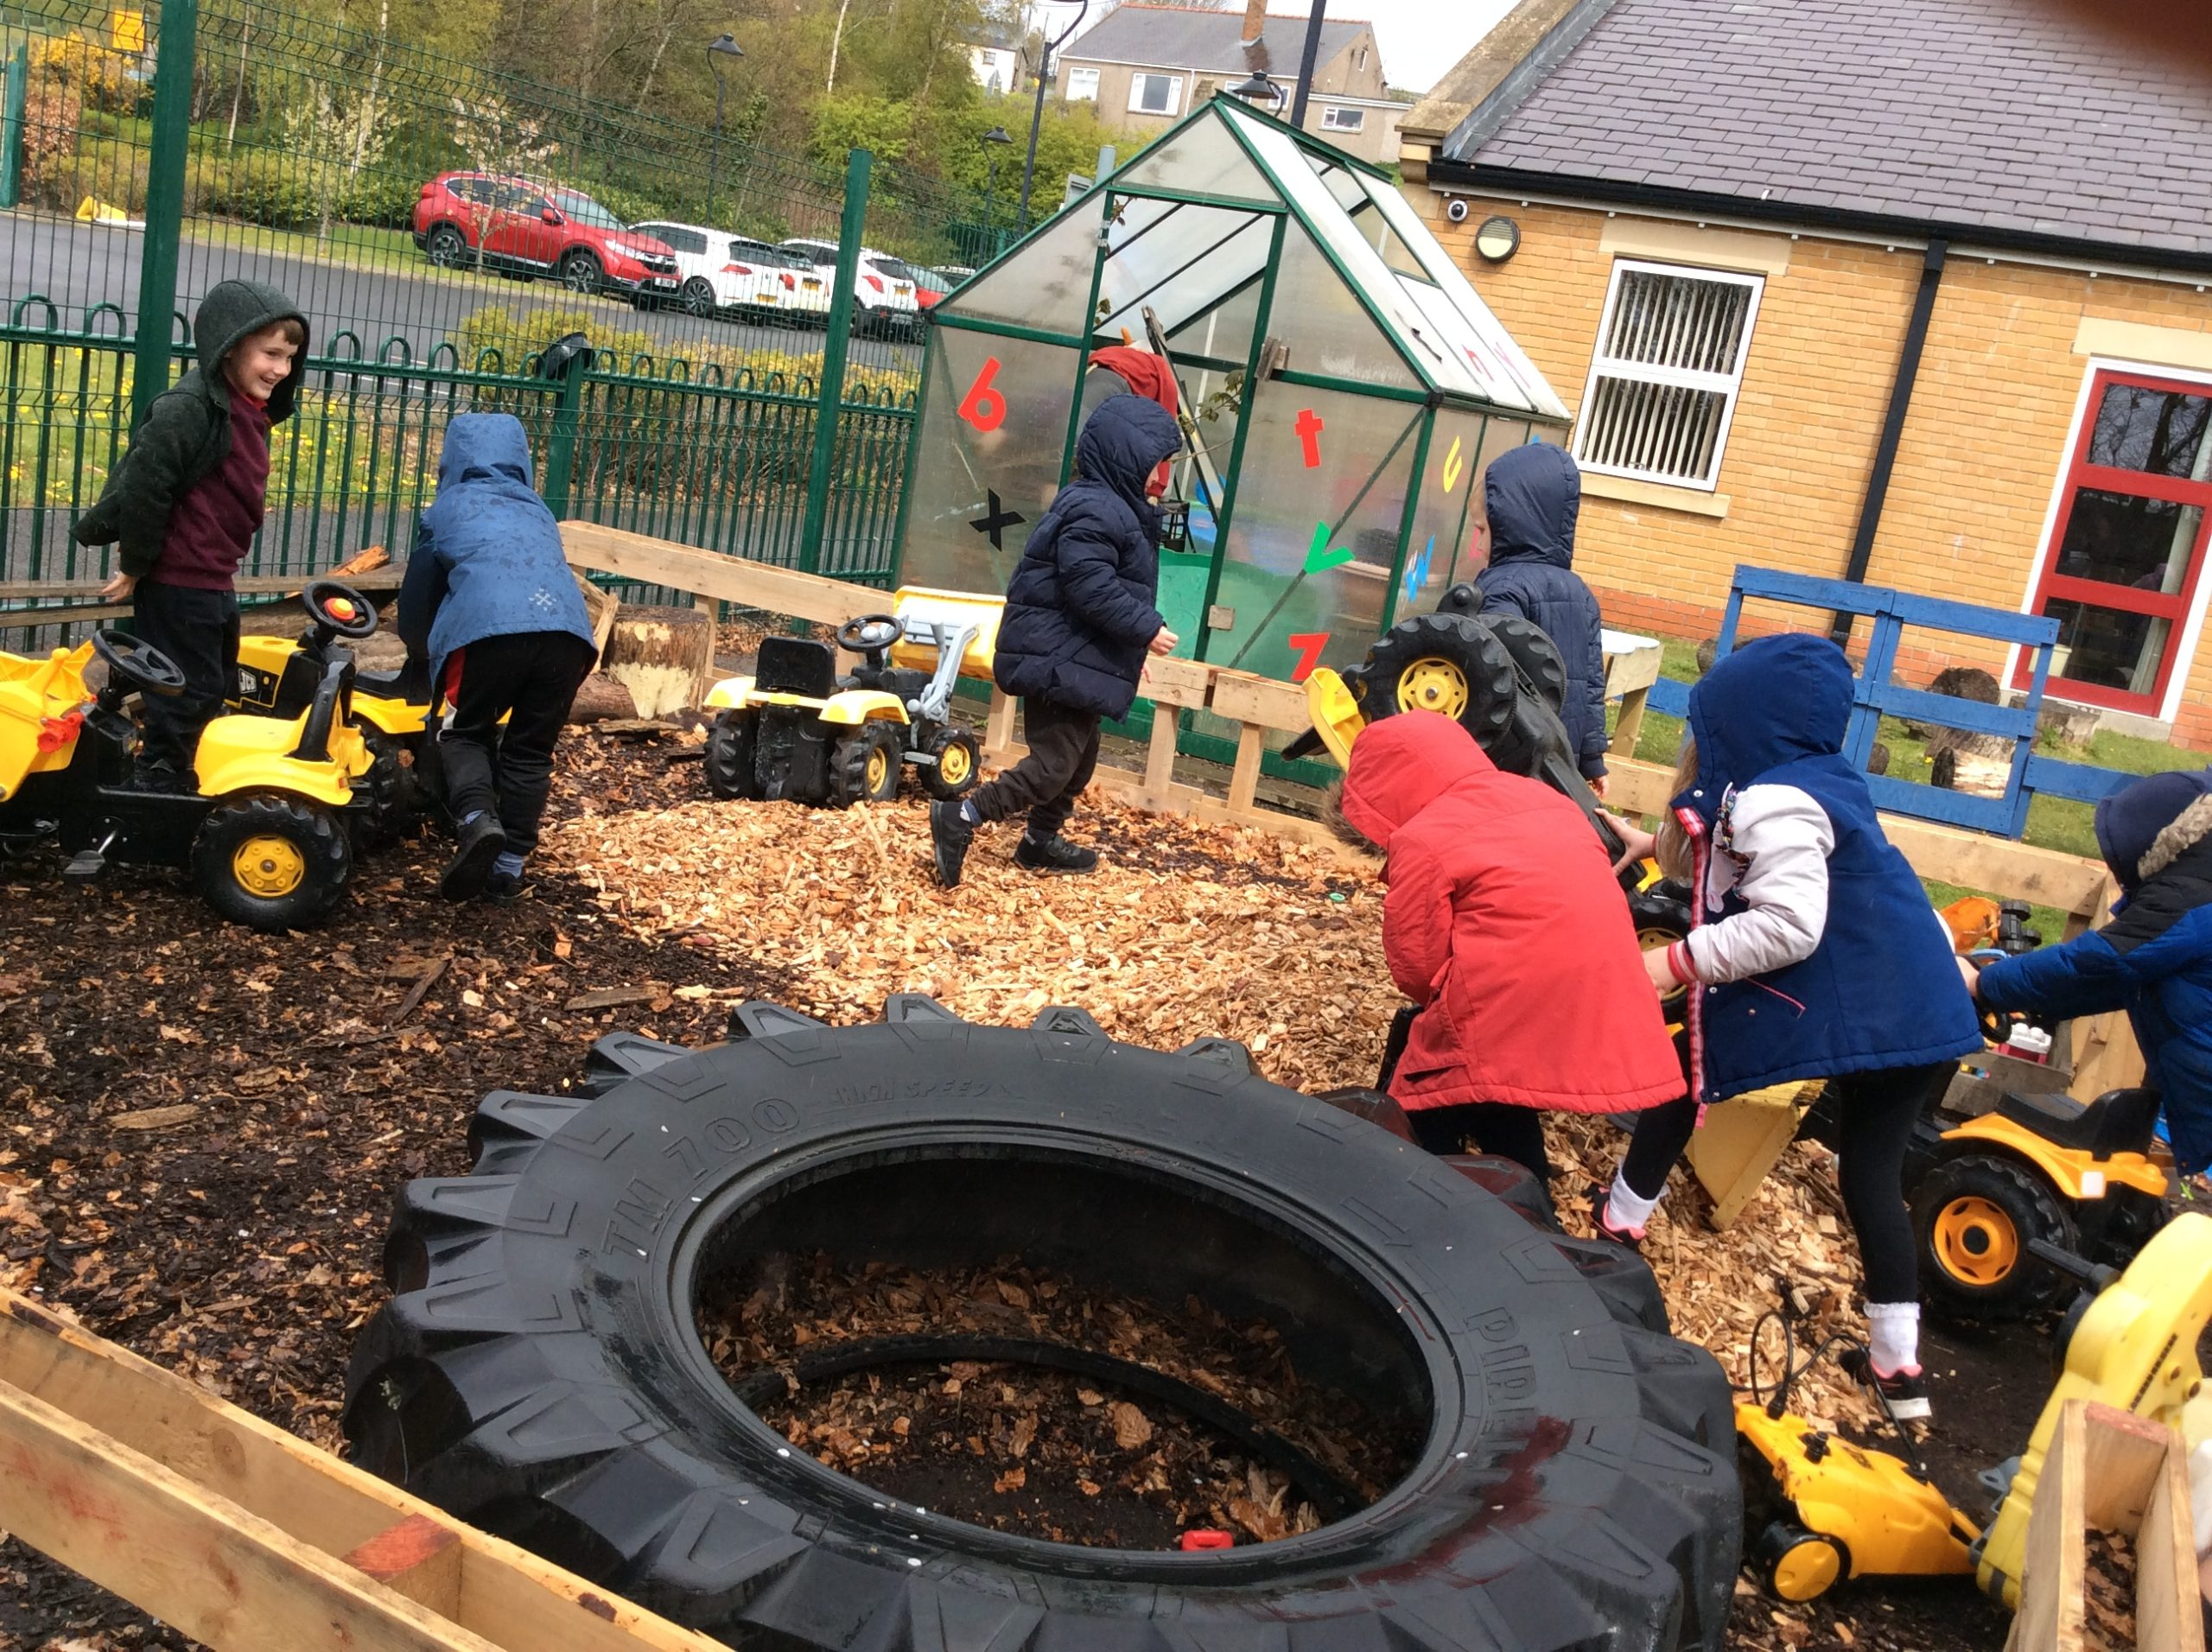 Our Early Years children doing what they do best!